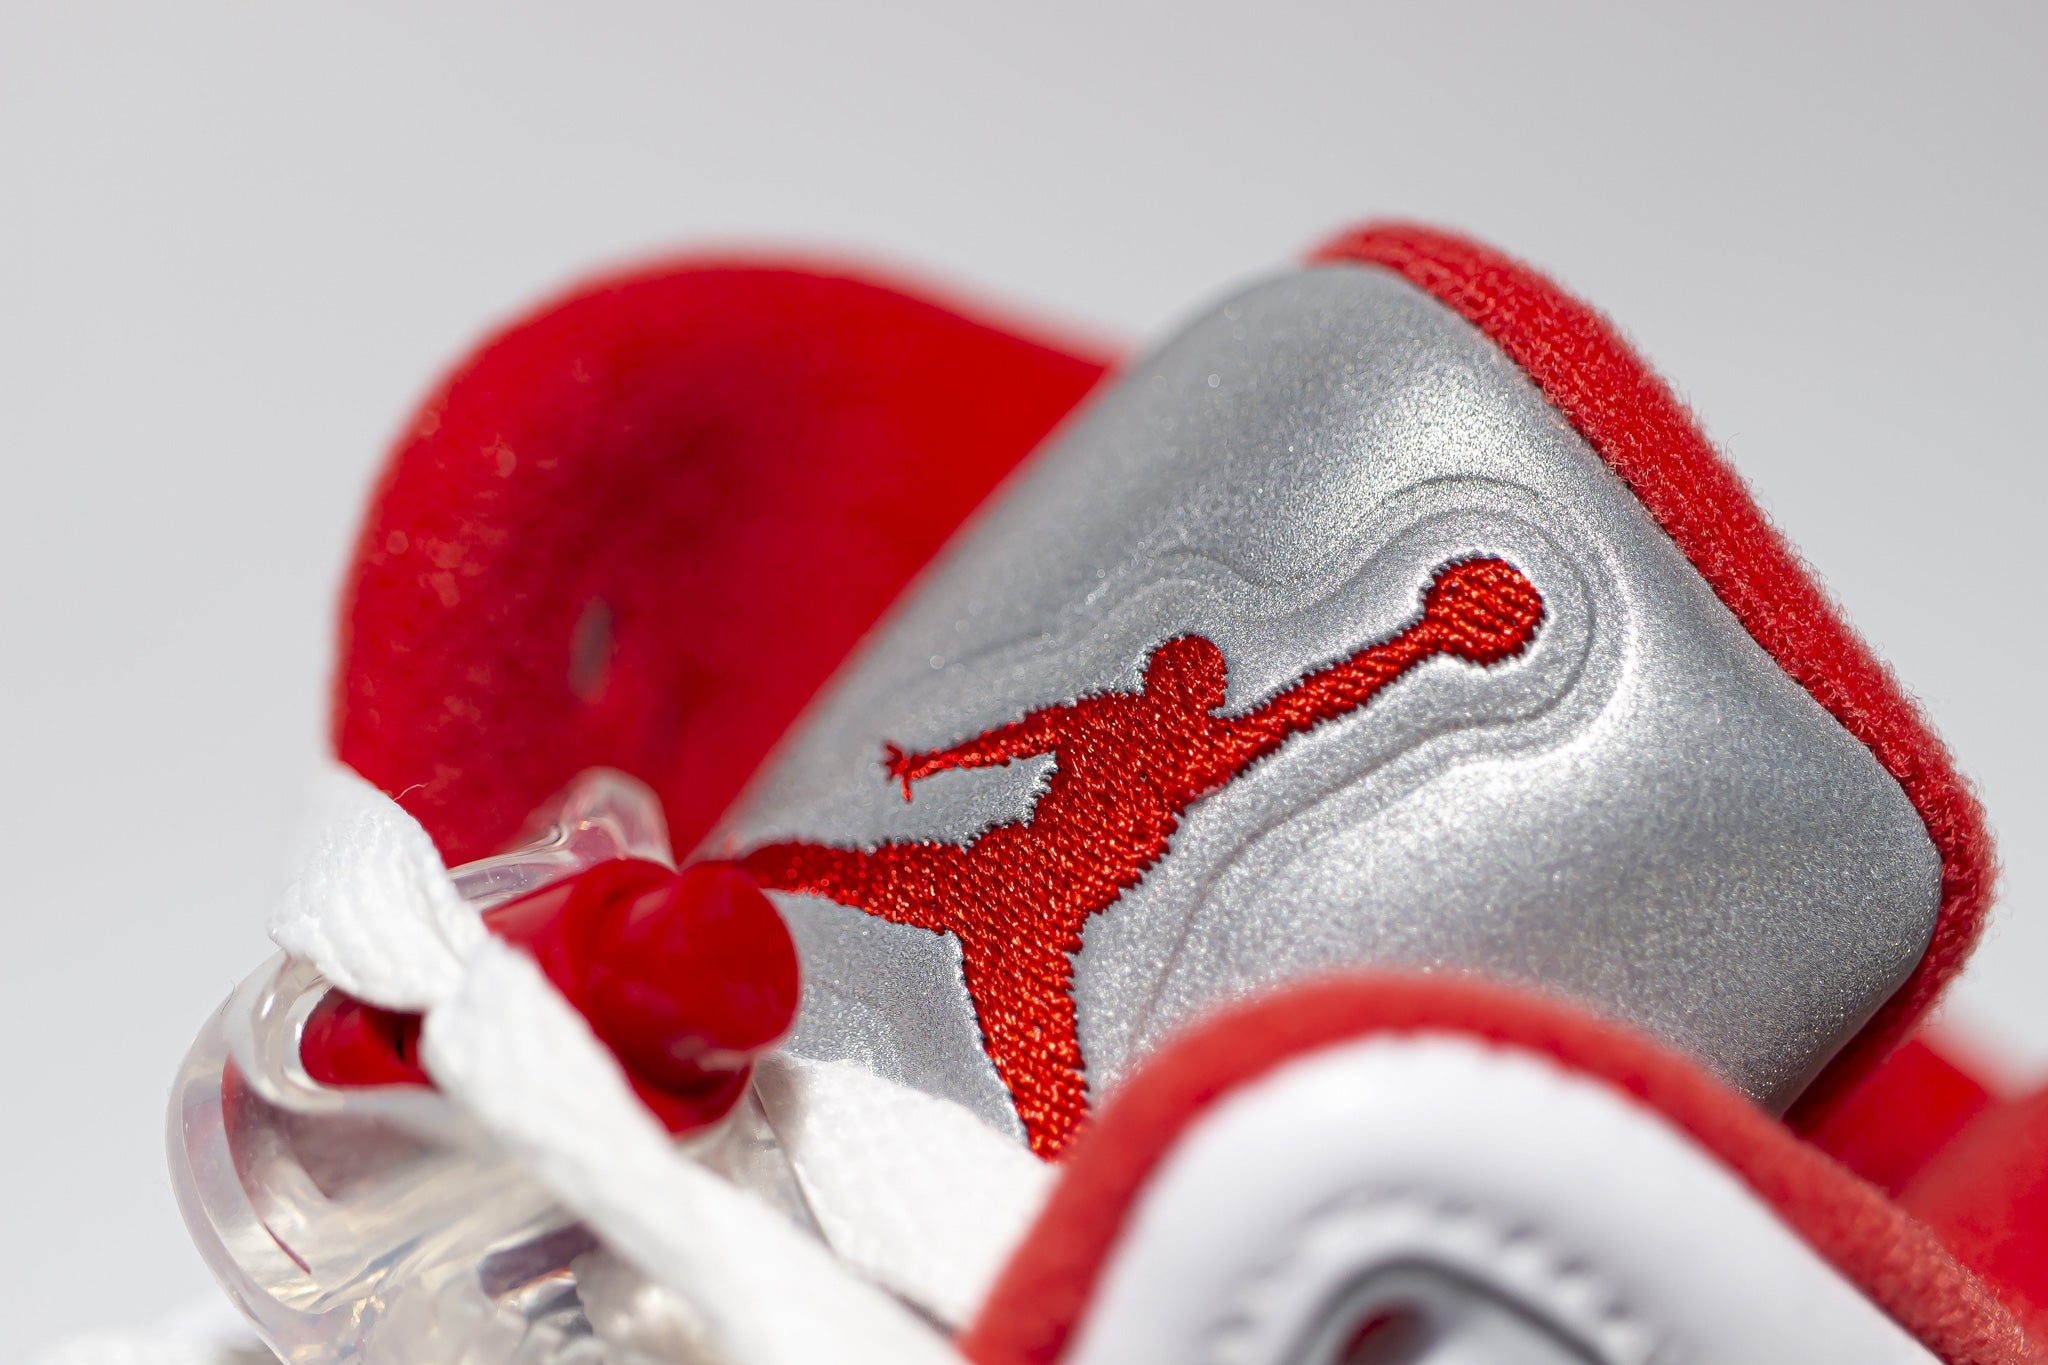 Close up view of embroidered red jumpman logo on 3m reflective sneaker tongue